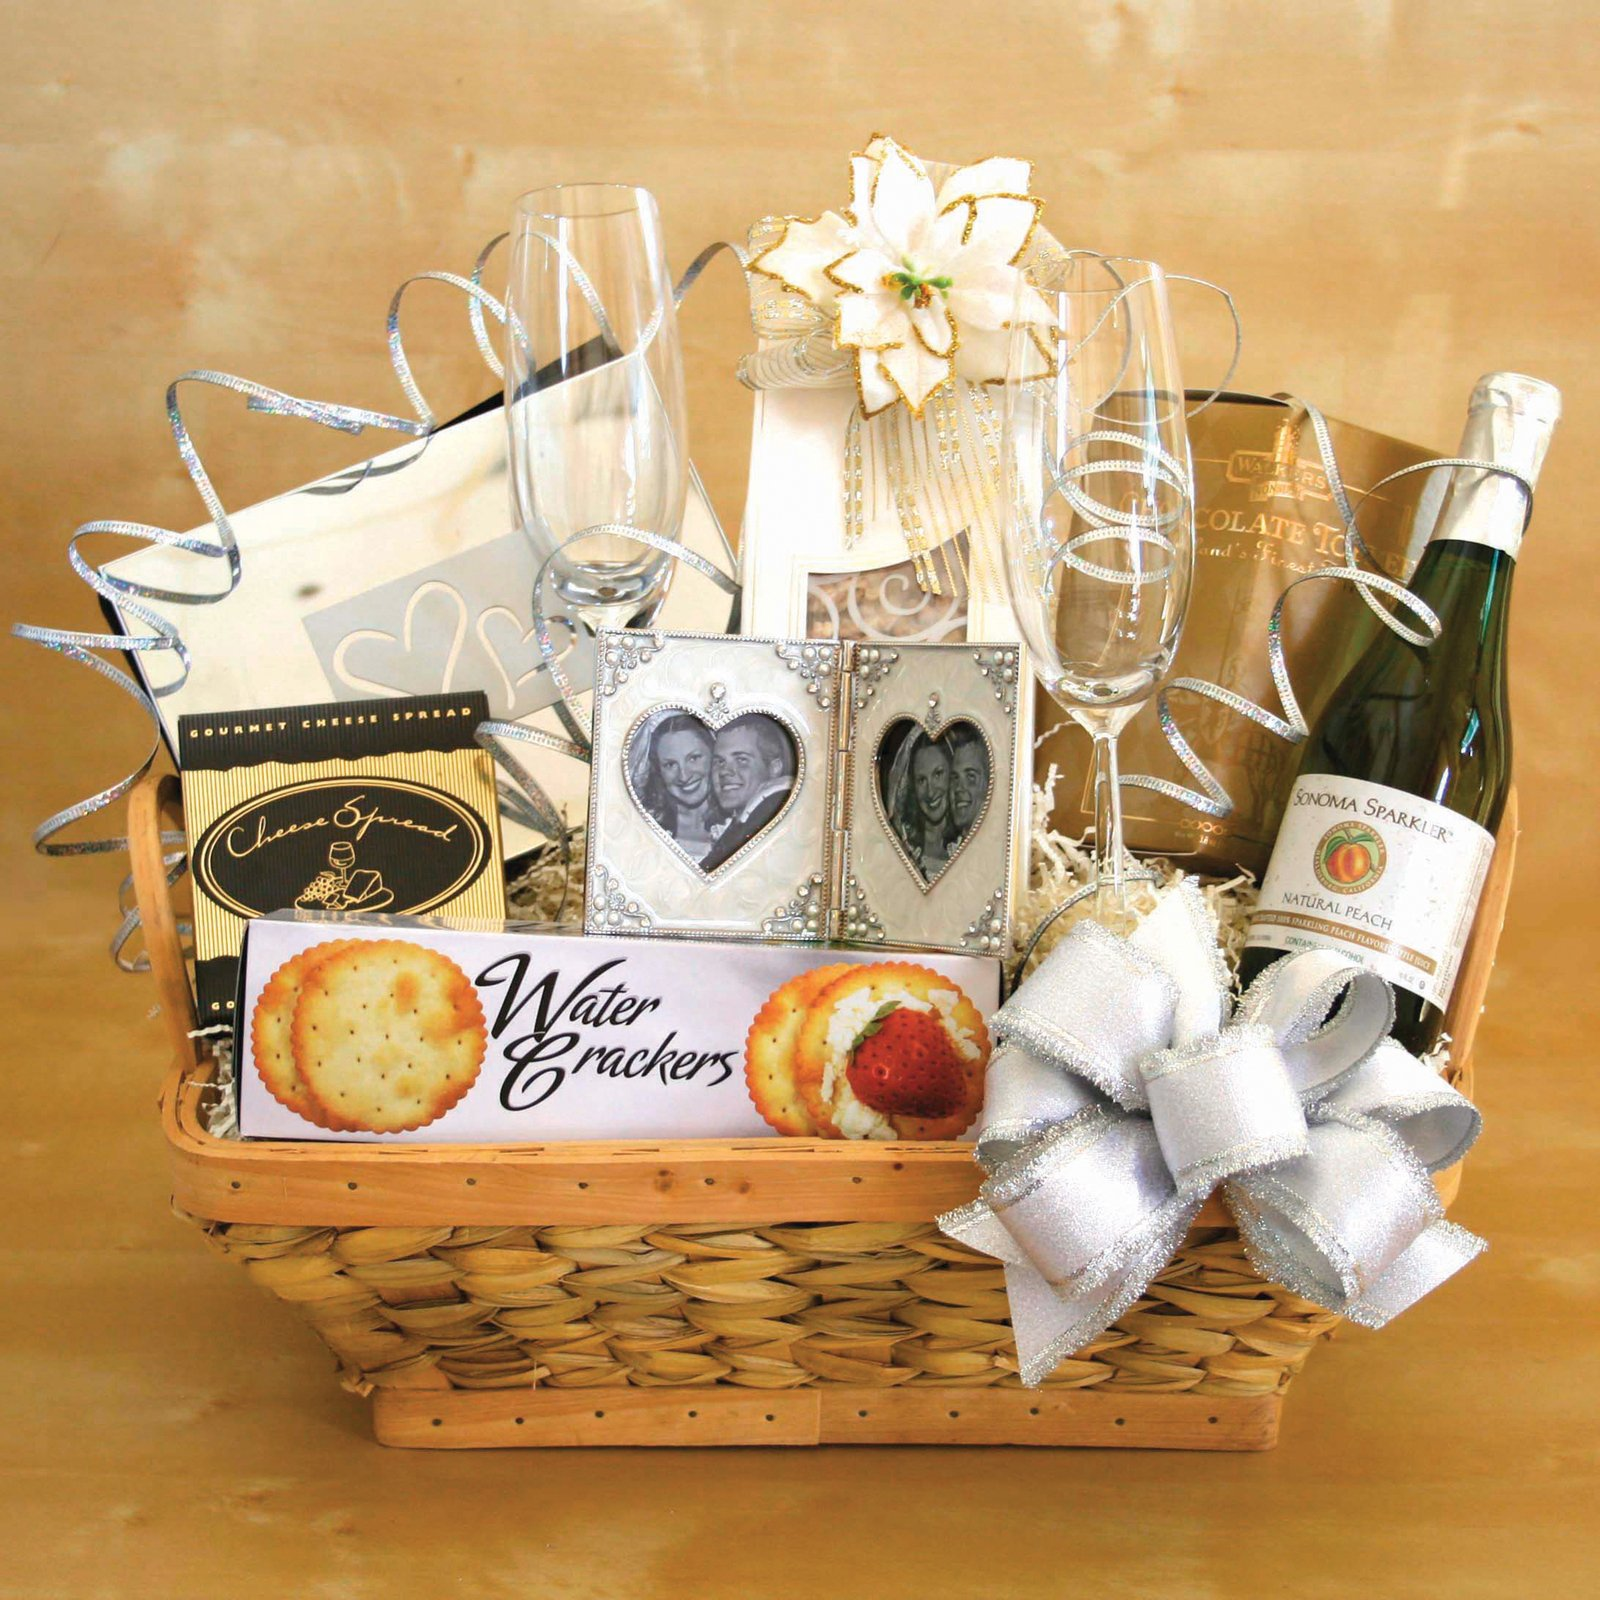 Gifts On Wedding: Simple Wedding Gifts